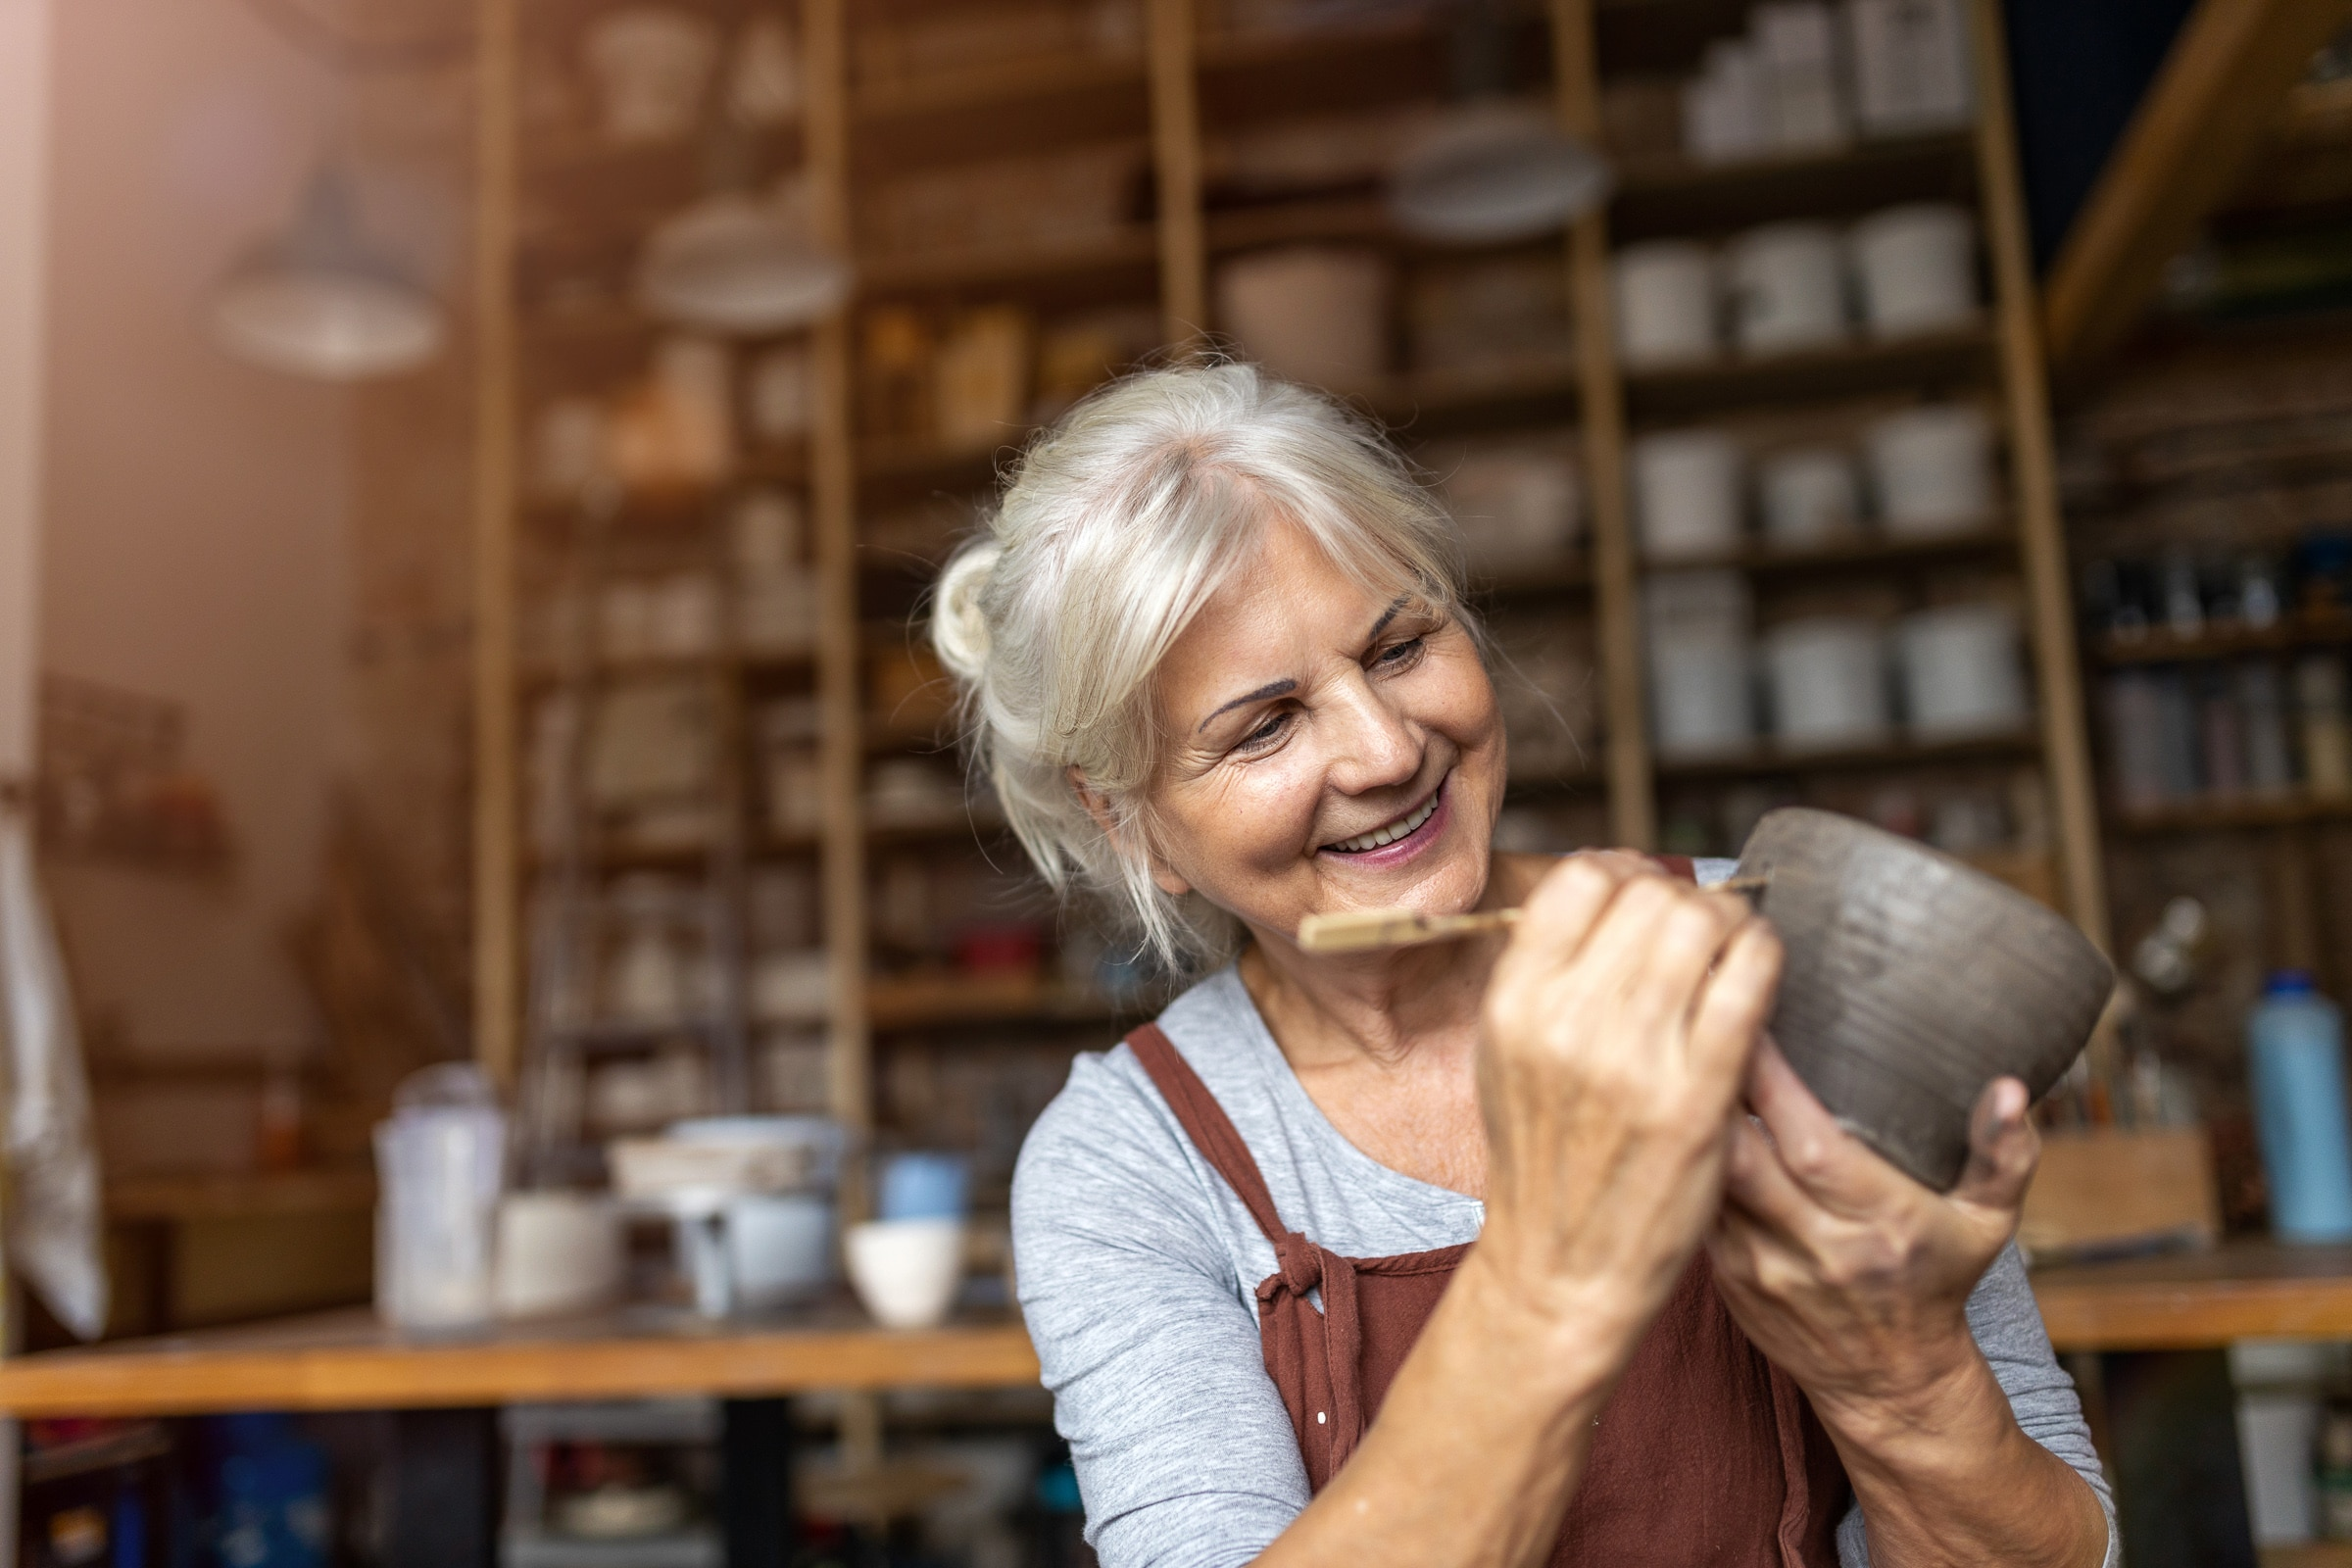 Smiling senior woman pottery artist business owner makes ceramics from clay